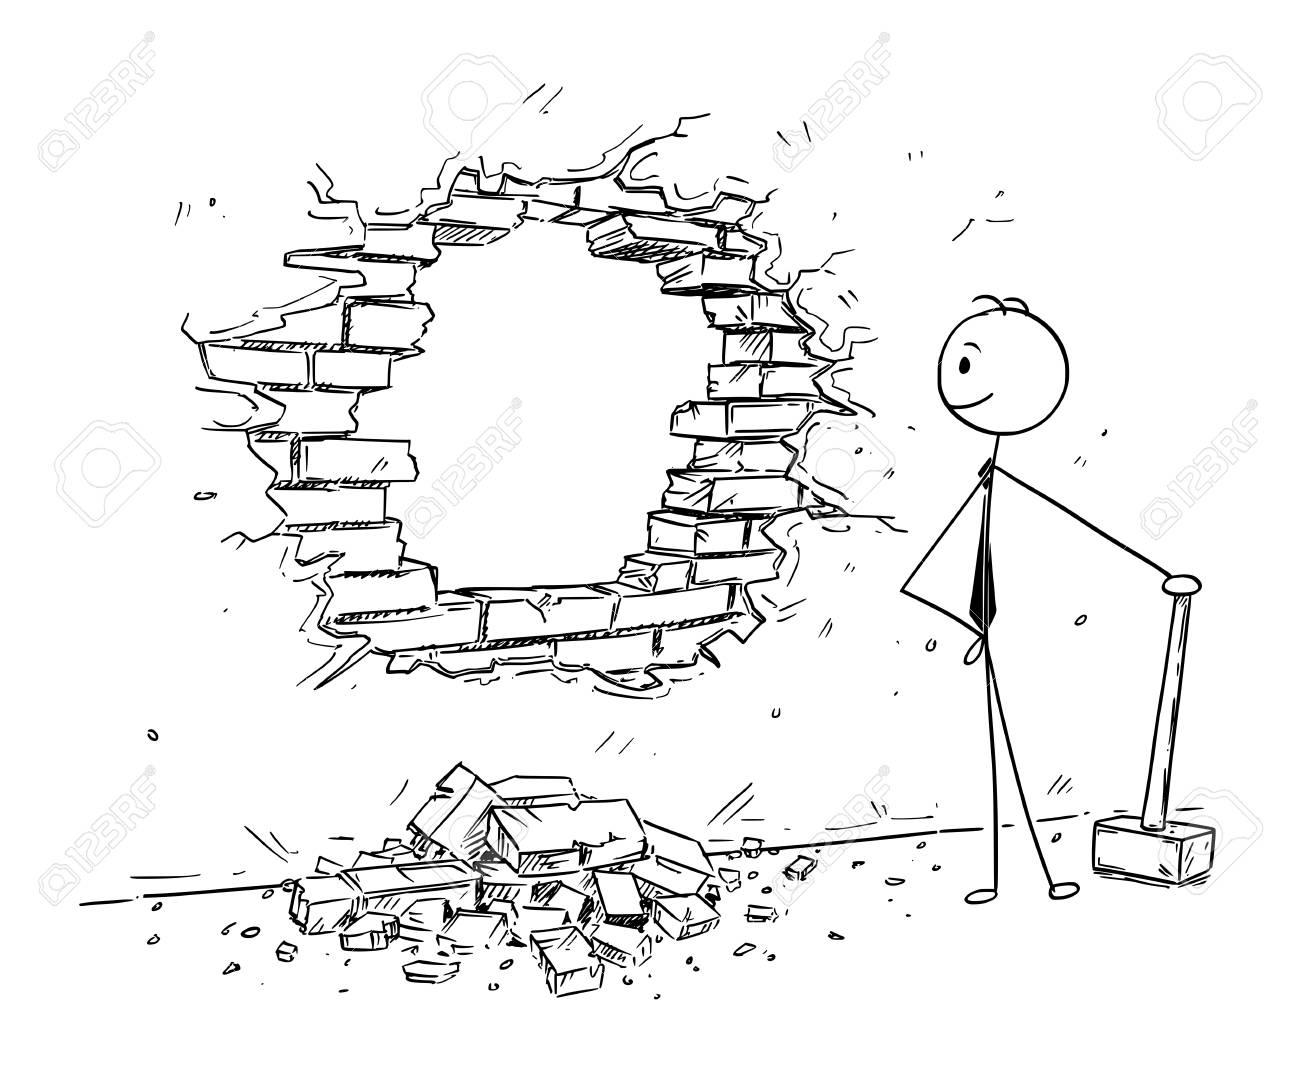 Cartoon stick man drawing conceptual illustration of businessman using hammer to break hole in the wall. Business concept of removing obstacles and looking for opportunities. - 93555822